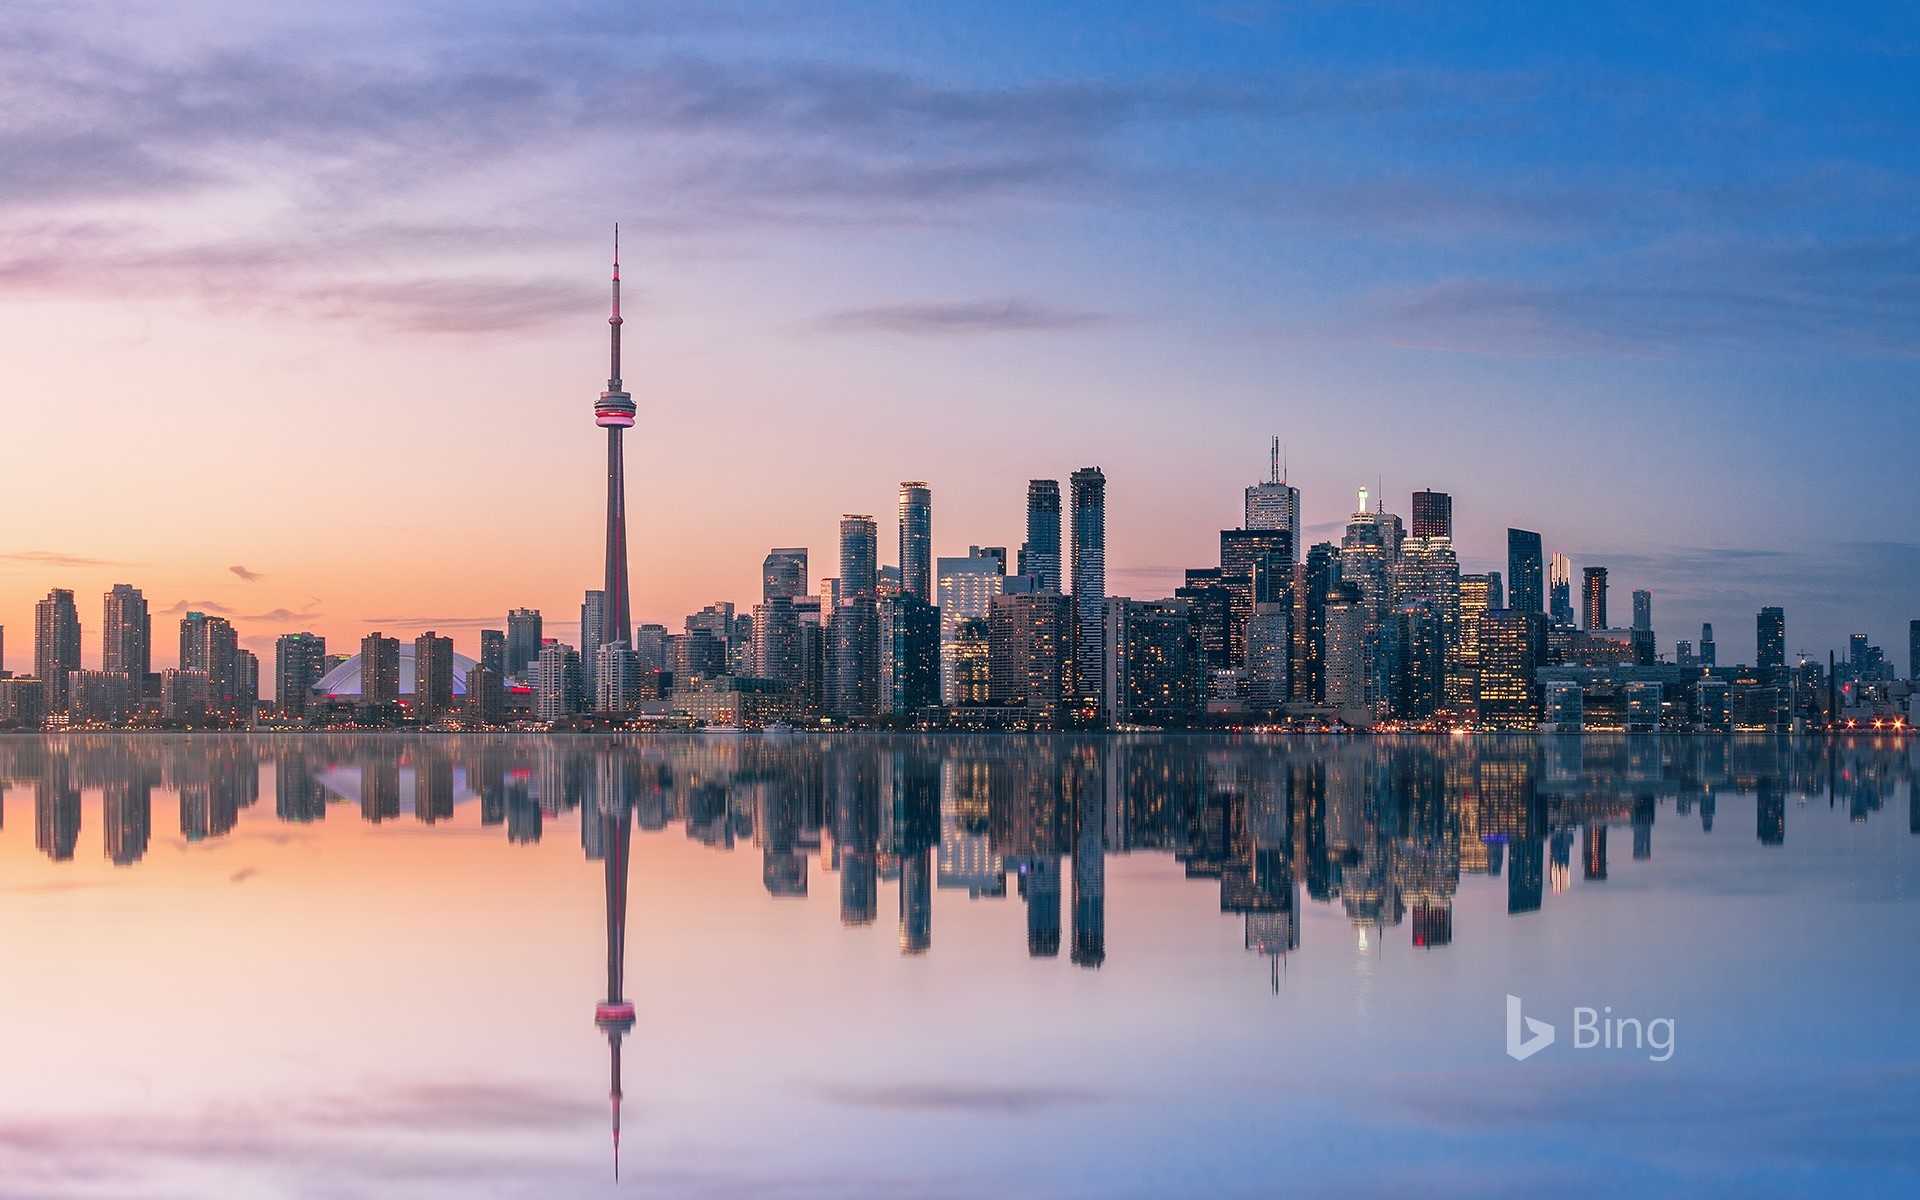 Skyline at sunset, Toronto, Canada